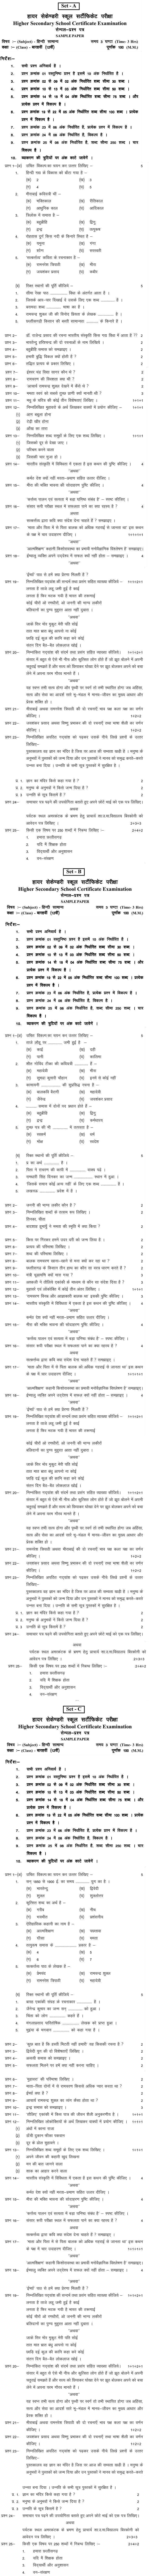 Chattisgarh Board Class 12 Hindi General Sample Paper